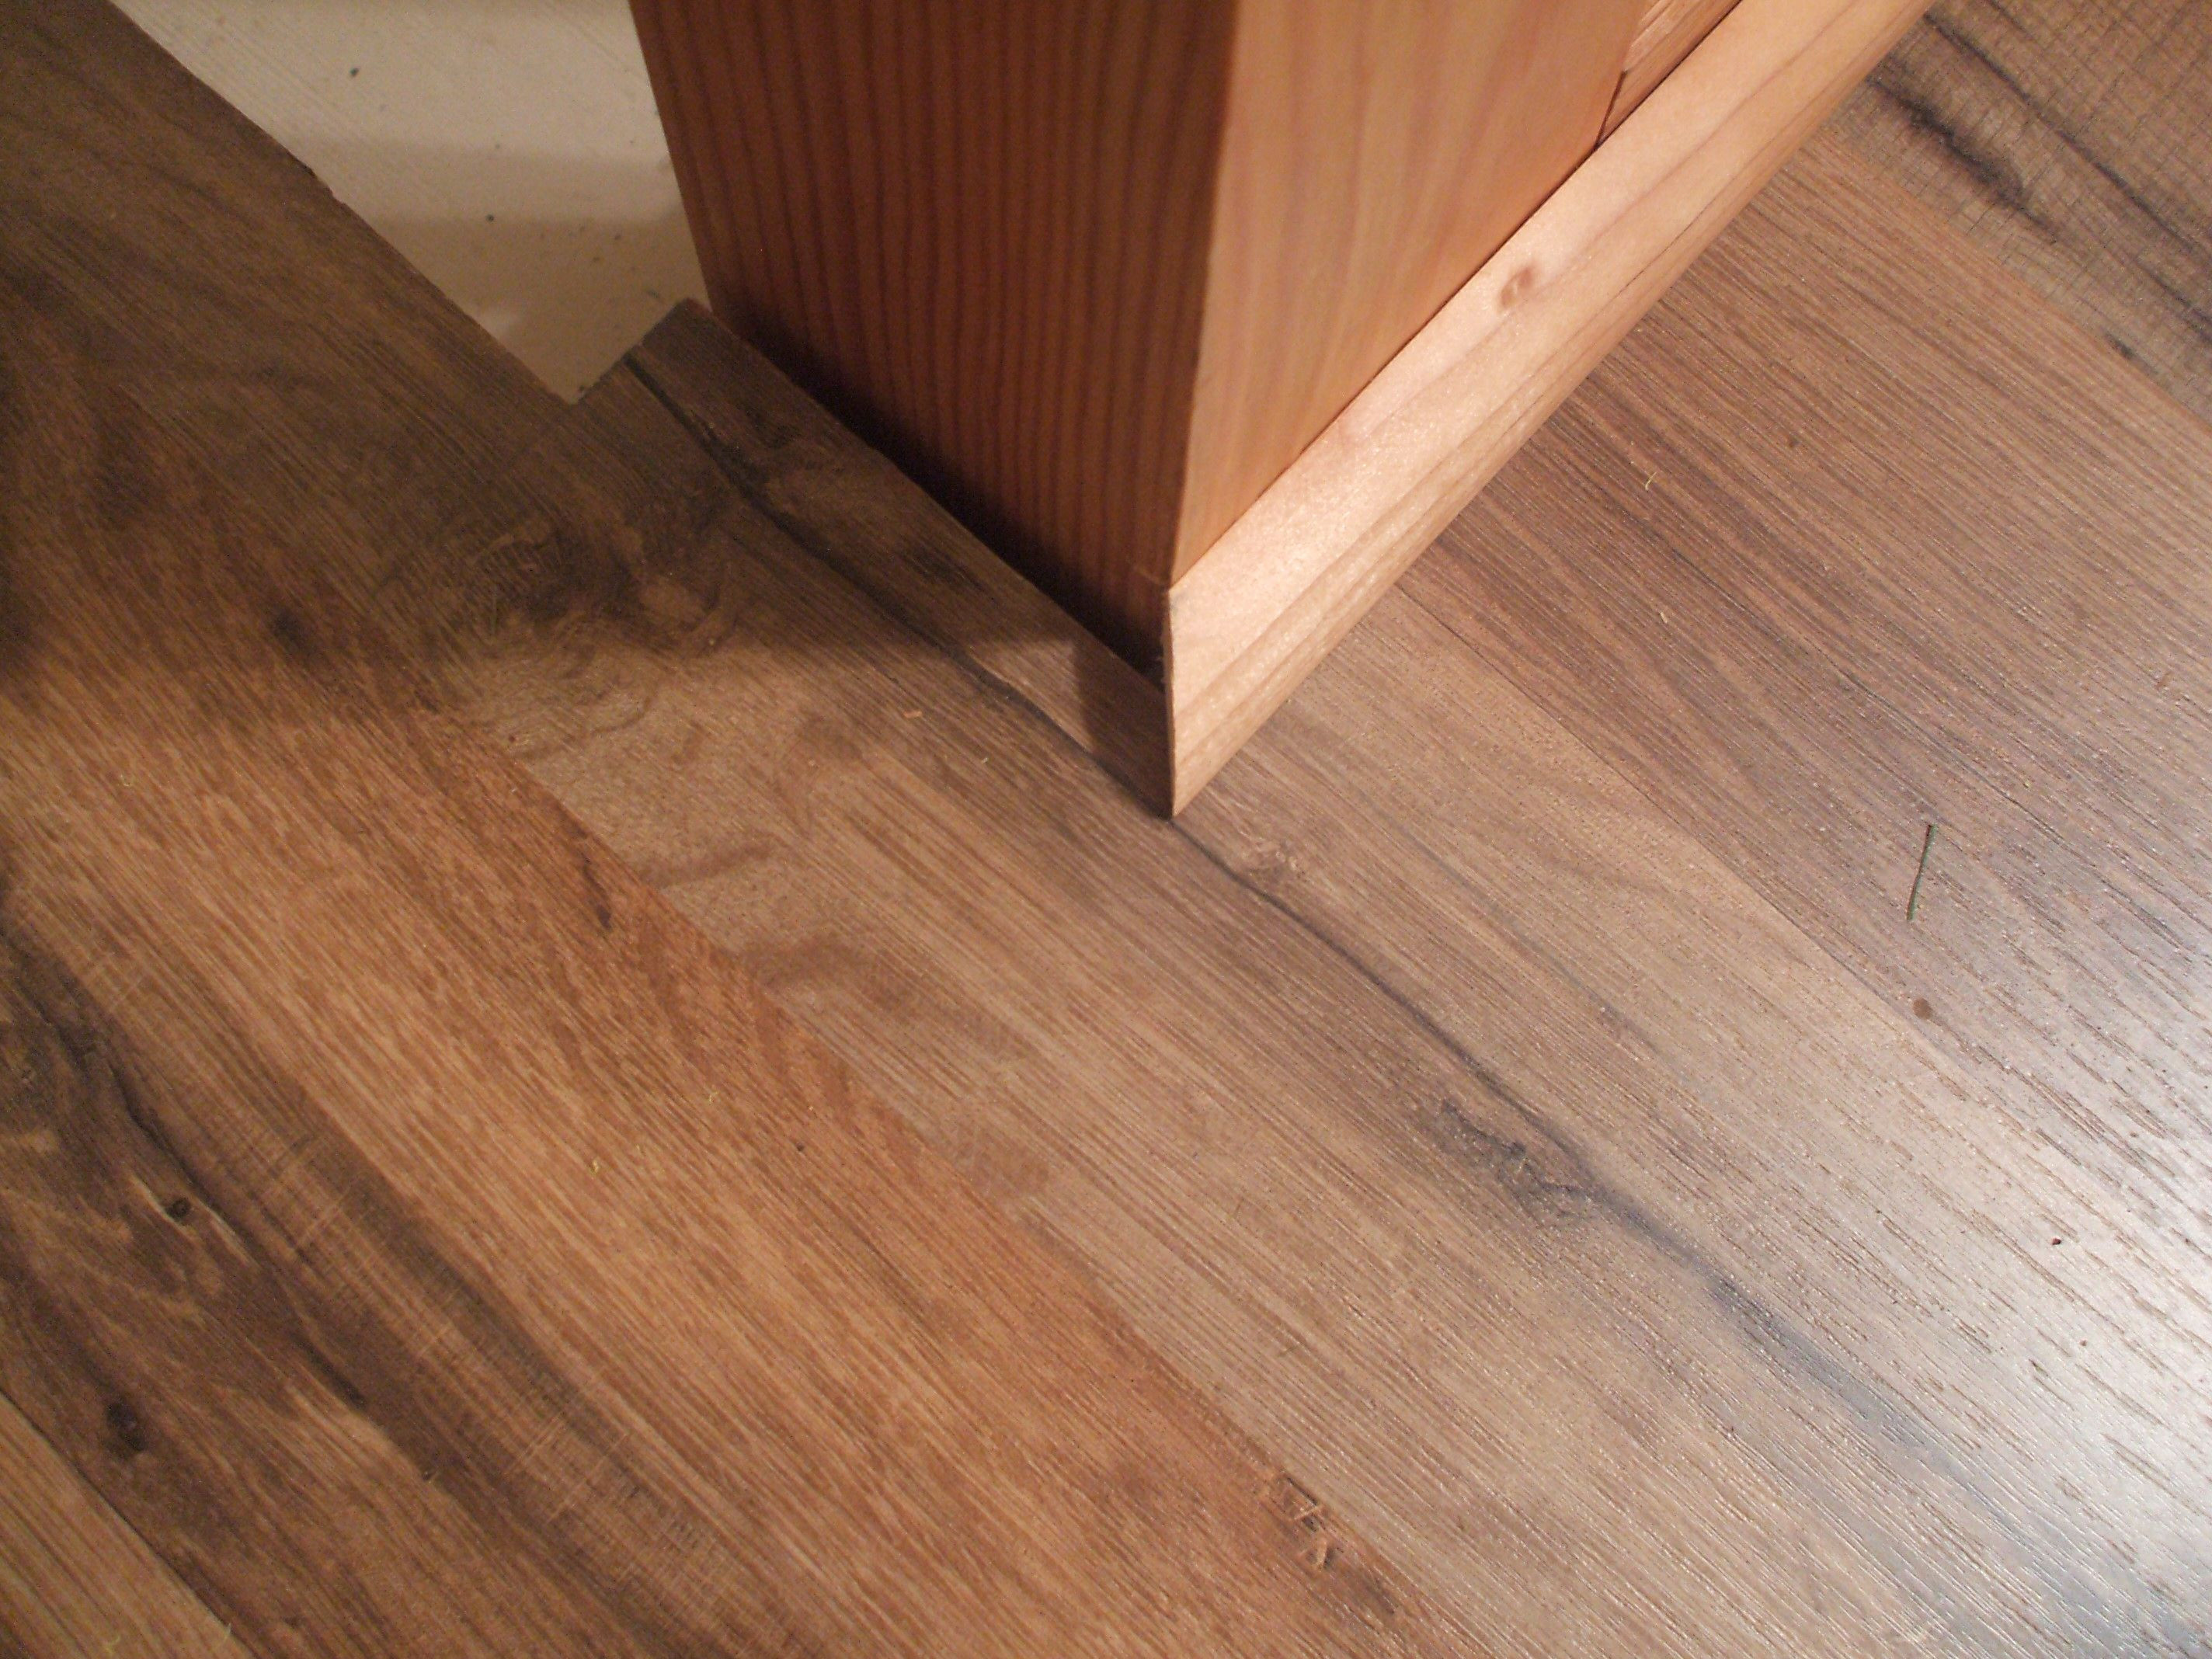 hardwood floor molding types of how to install shoe molding or quarter round molding intended for set first piece in place 56a49e523df78cf772834b40 jpg